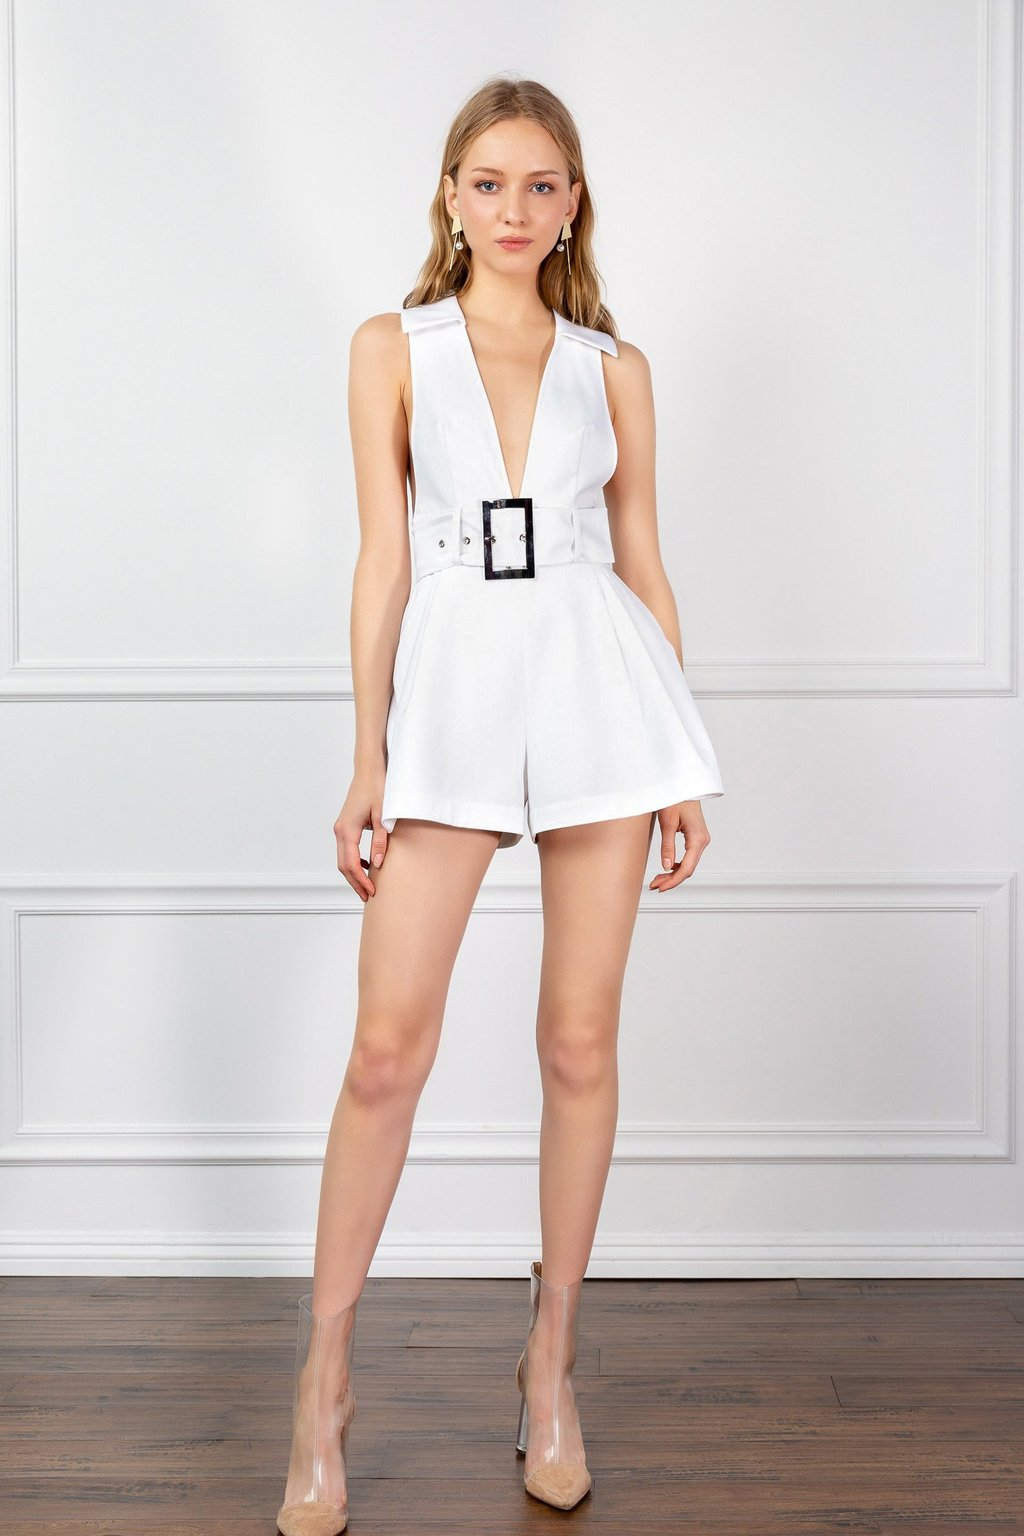 Marilyn Monroe Inspired Romper by J.ING LA women's fashion